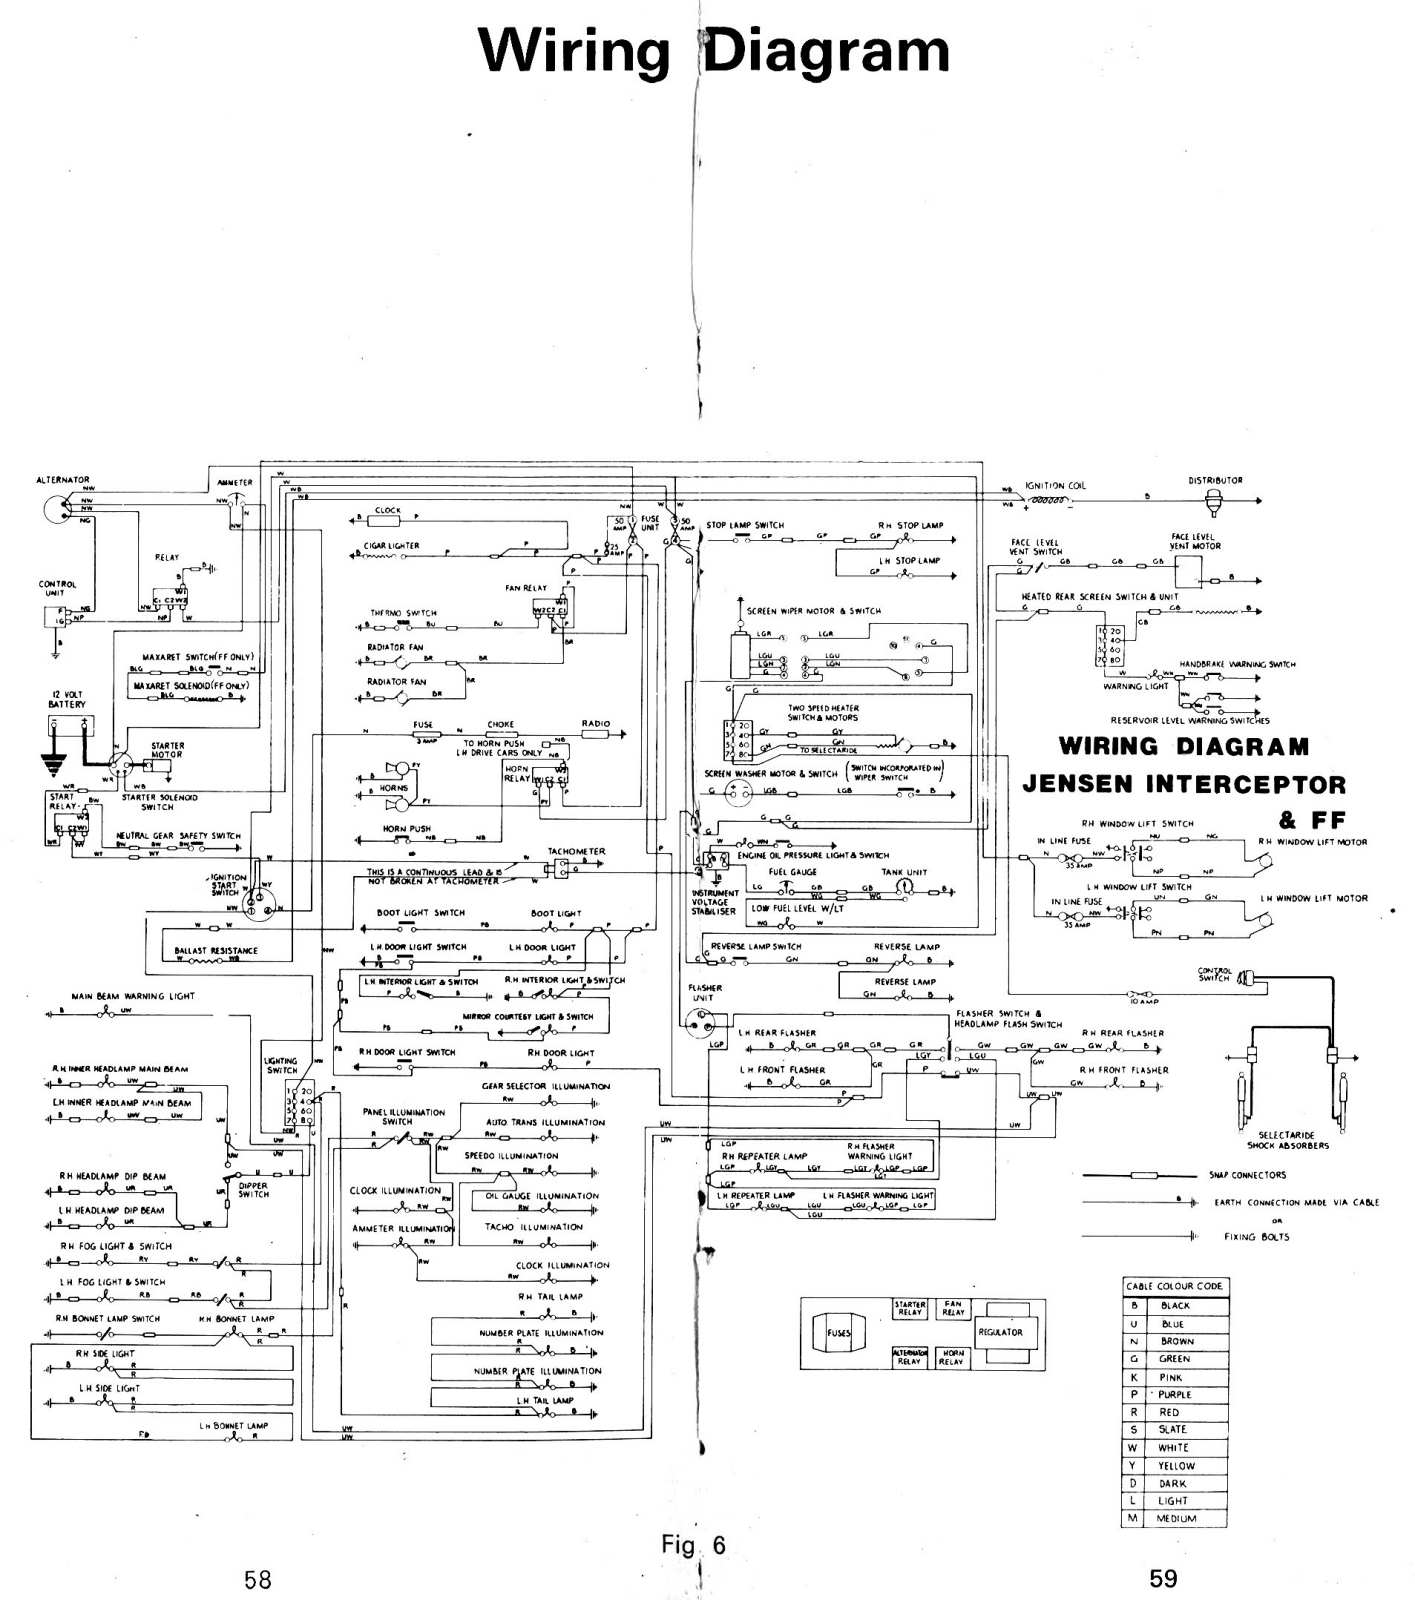 Jensen Interceptor Wiring Diagram : 33 Wiring Diagram